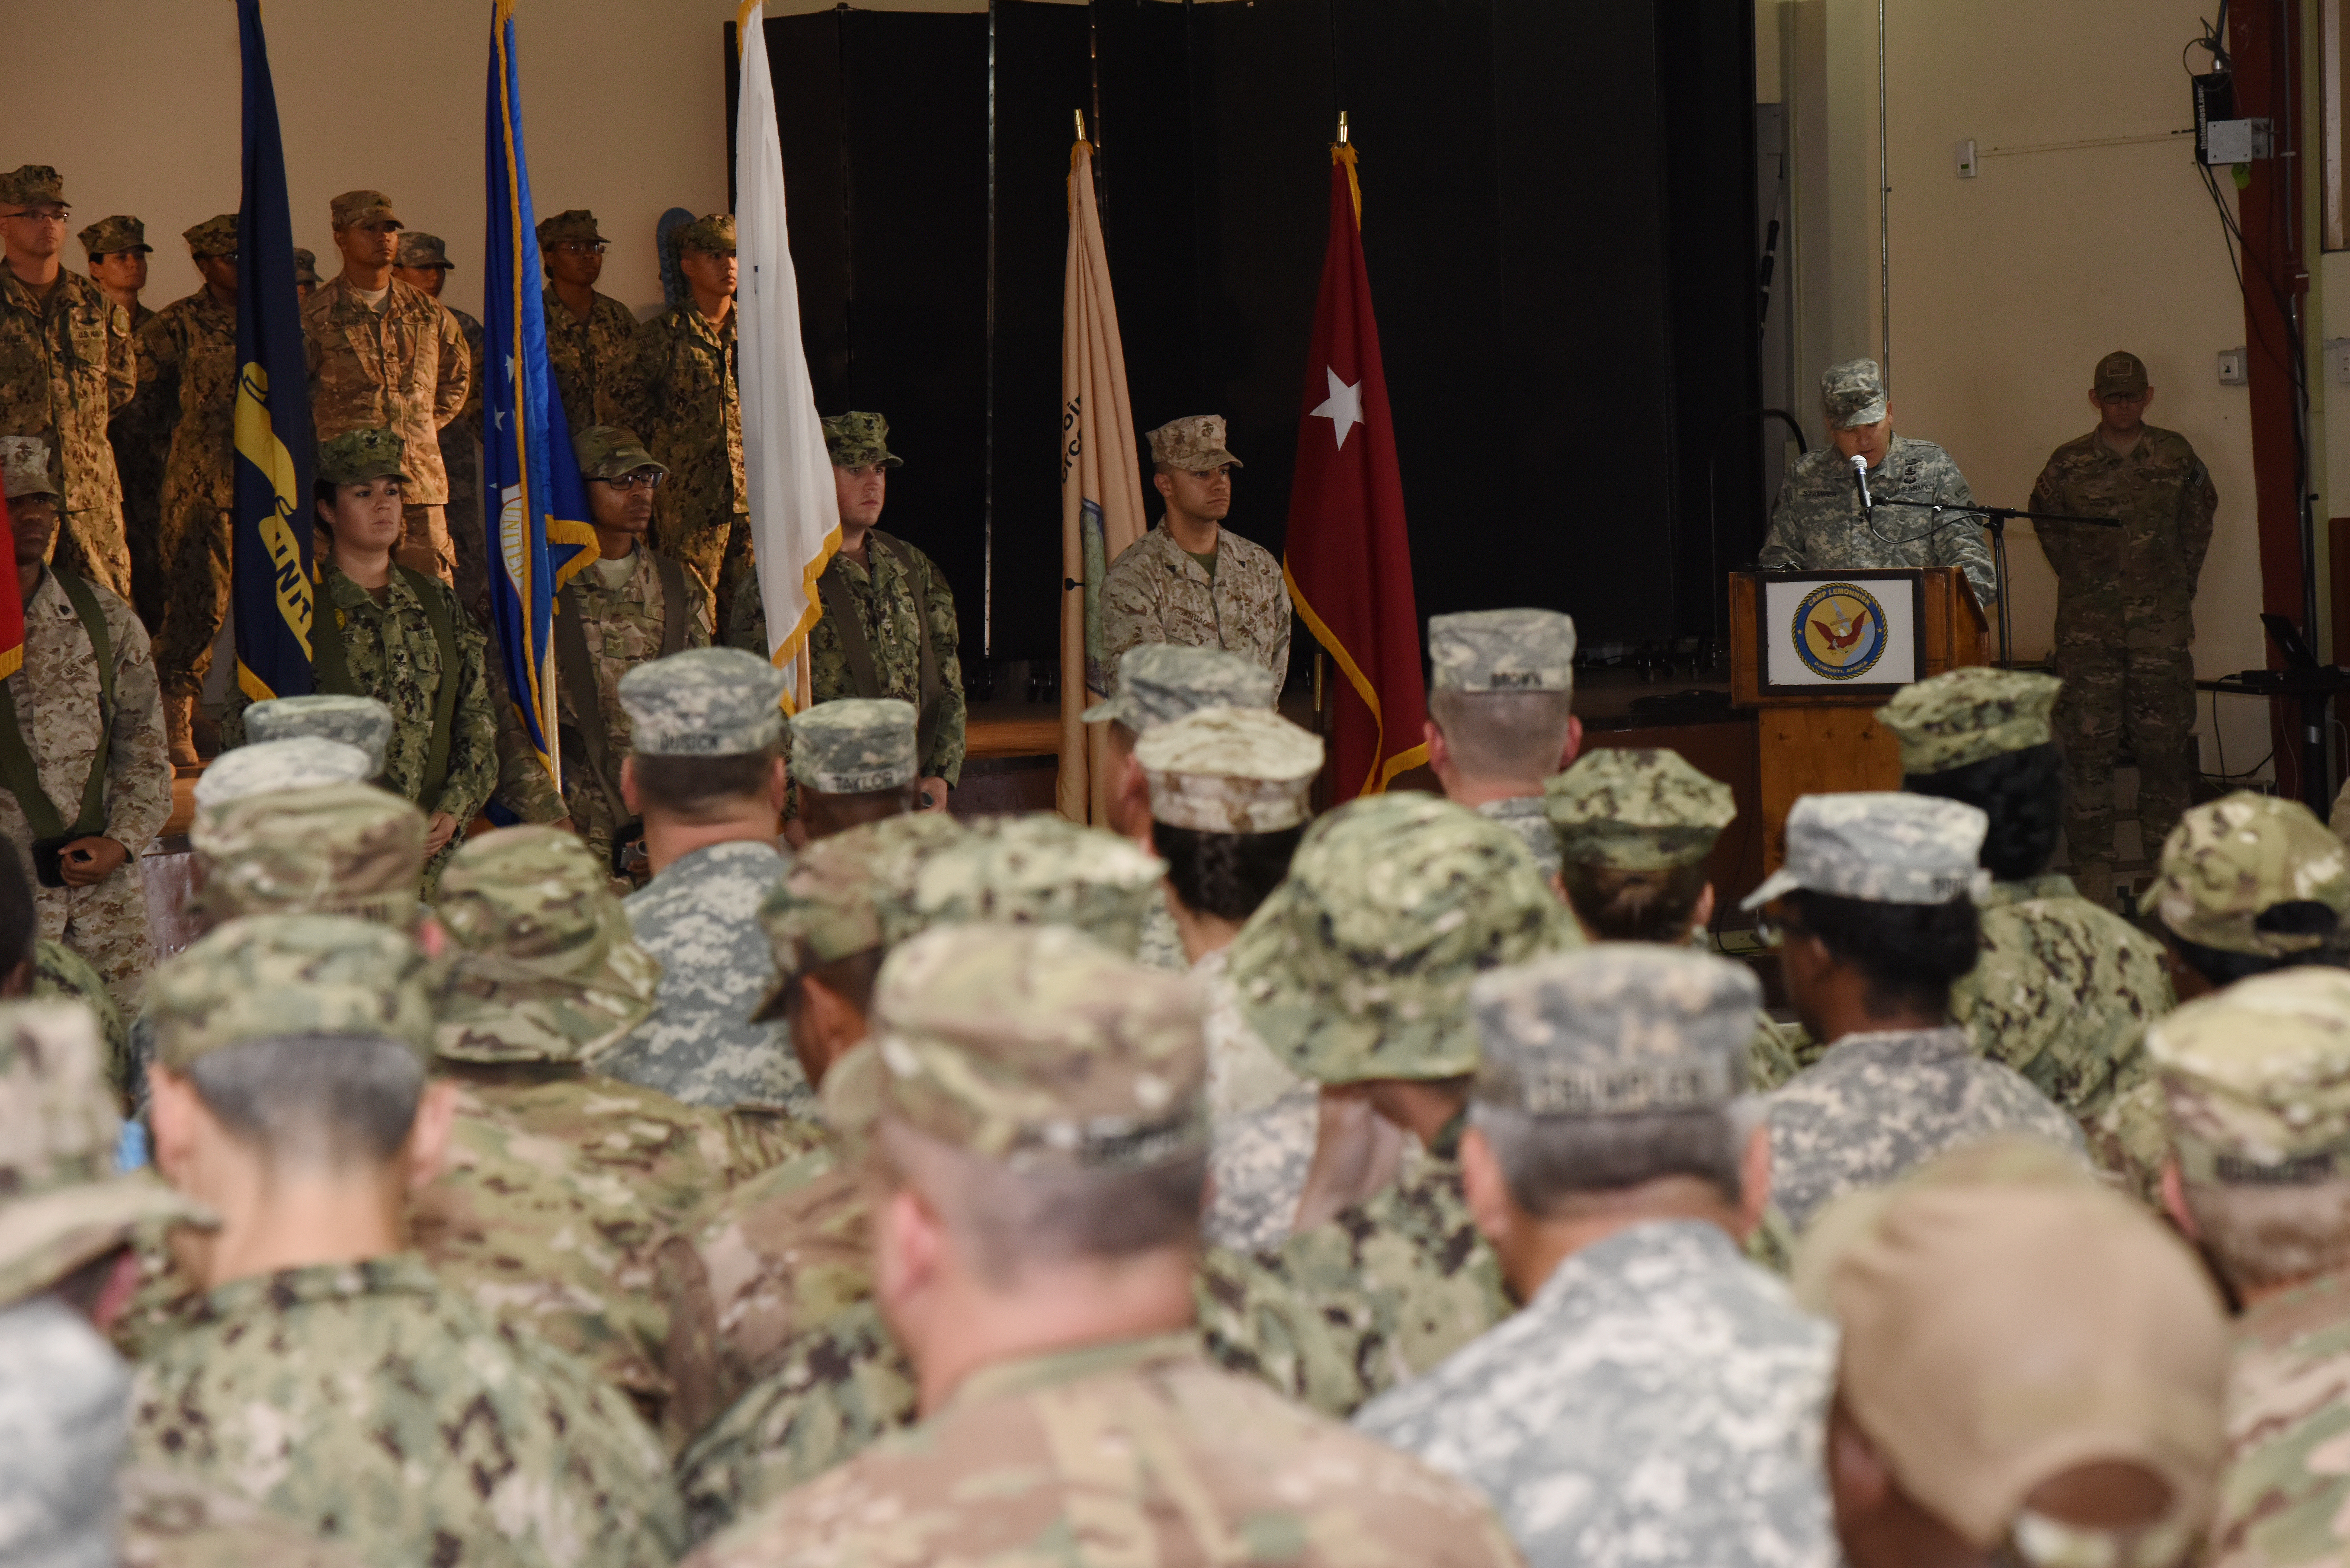 U.S. Army Maj. Gen. Mark Stammer, Combined Joint Task Force-Horn of Africa commander, speaks to service members assigned to Camp Lemonnier, Djibouti during a relinquishment of authority ceremony June 19, 2015. (U.S. Air Force photo by Staff Sgt. Maria Bowman)